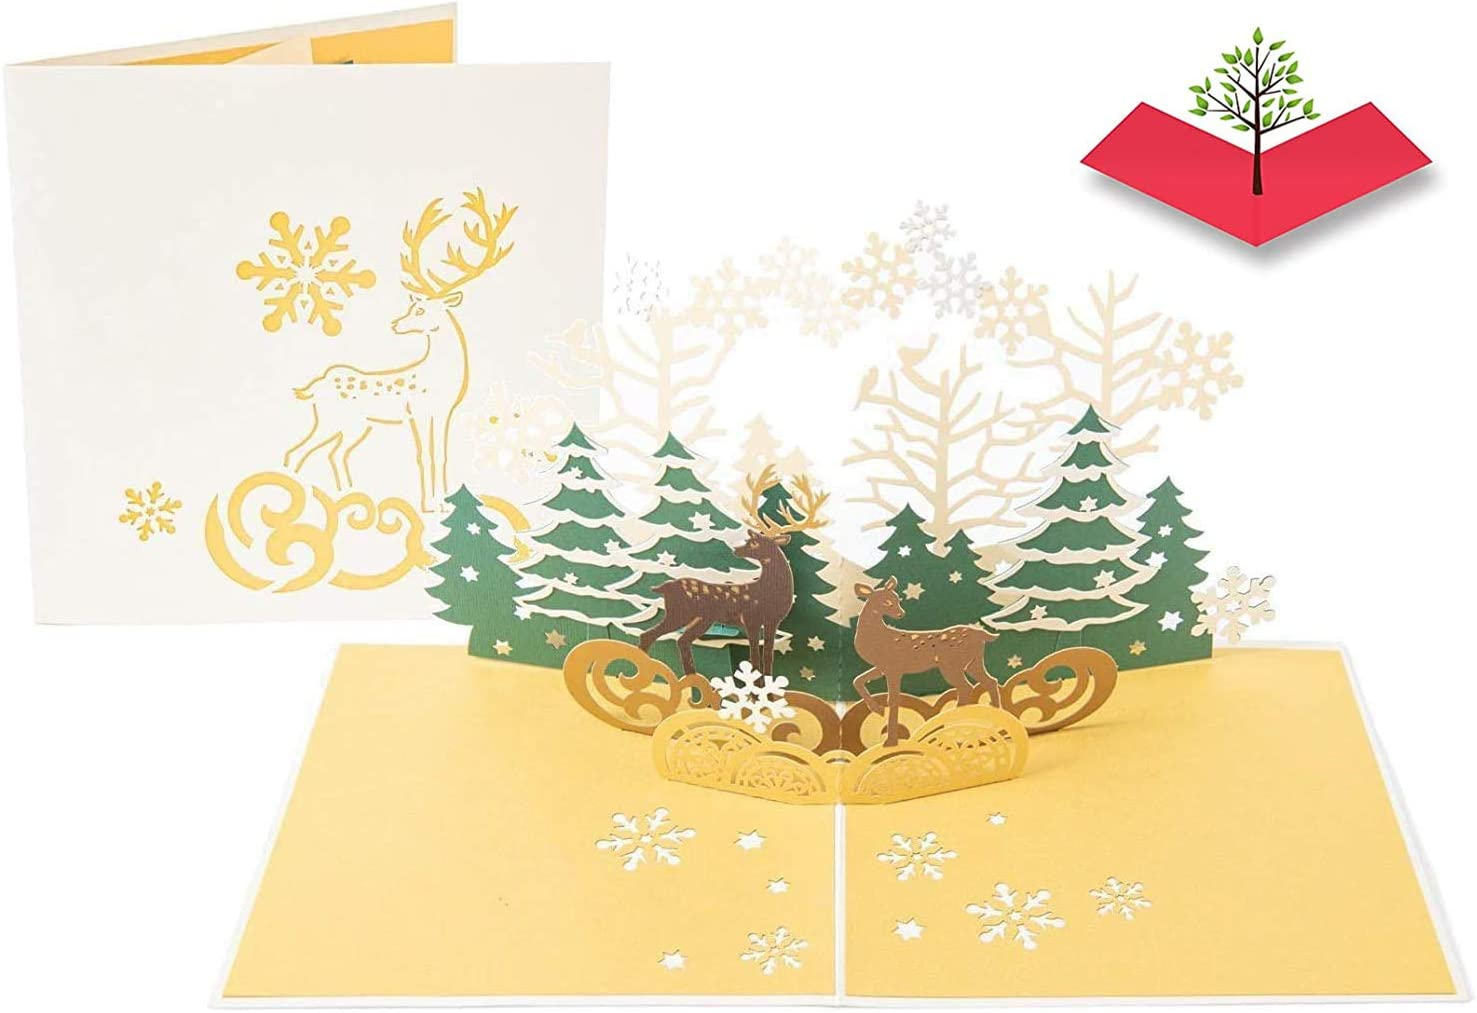 Amazon Com Poplife Reindeer In The Forest Pop Up Christmas Card Handmade 3d Holiday Greeting Thanksgiving Blank Note Small Stocking Present For Friends And Family Naughty Or Nice Office Products